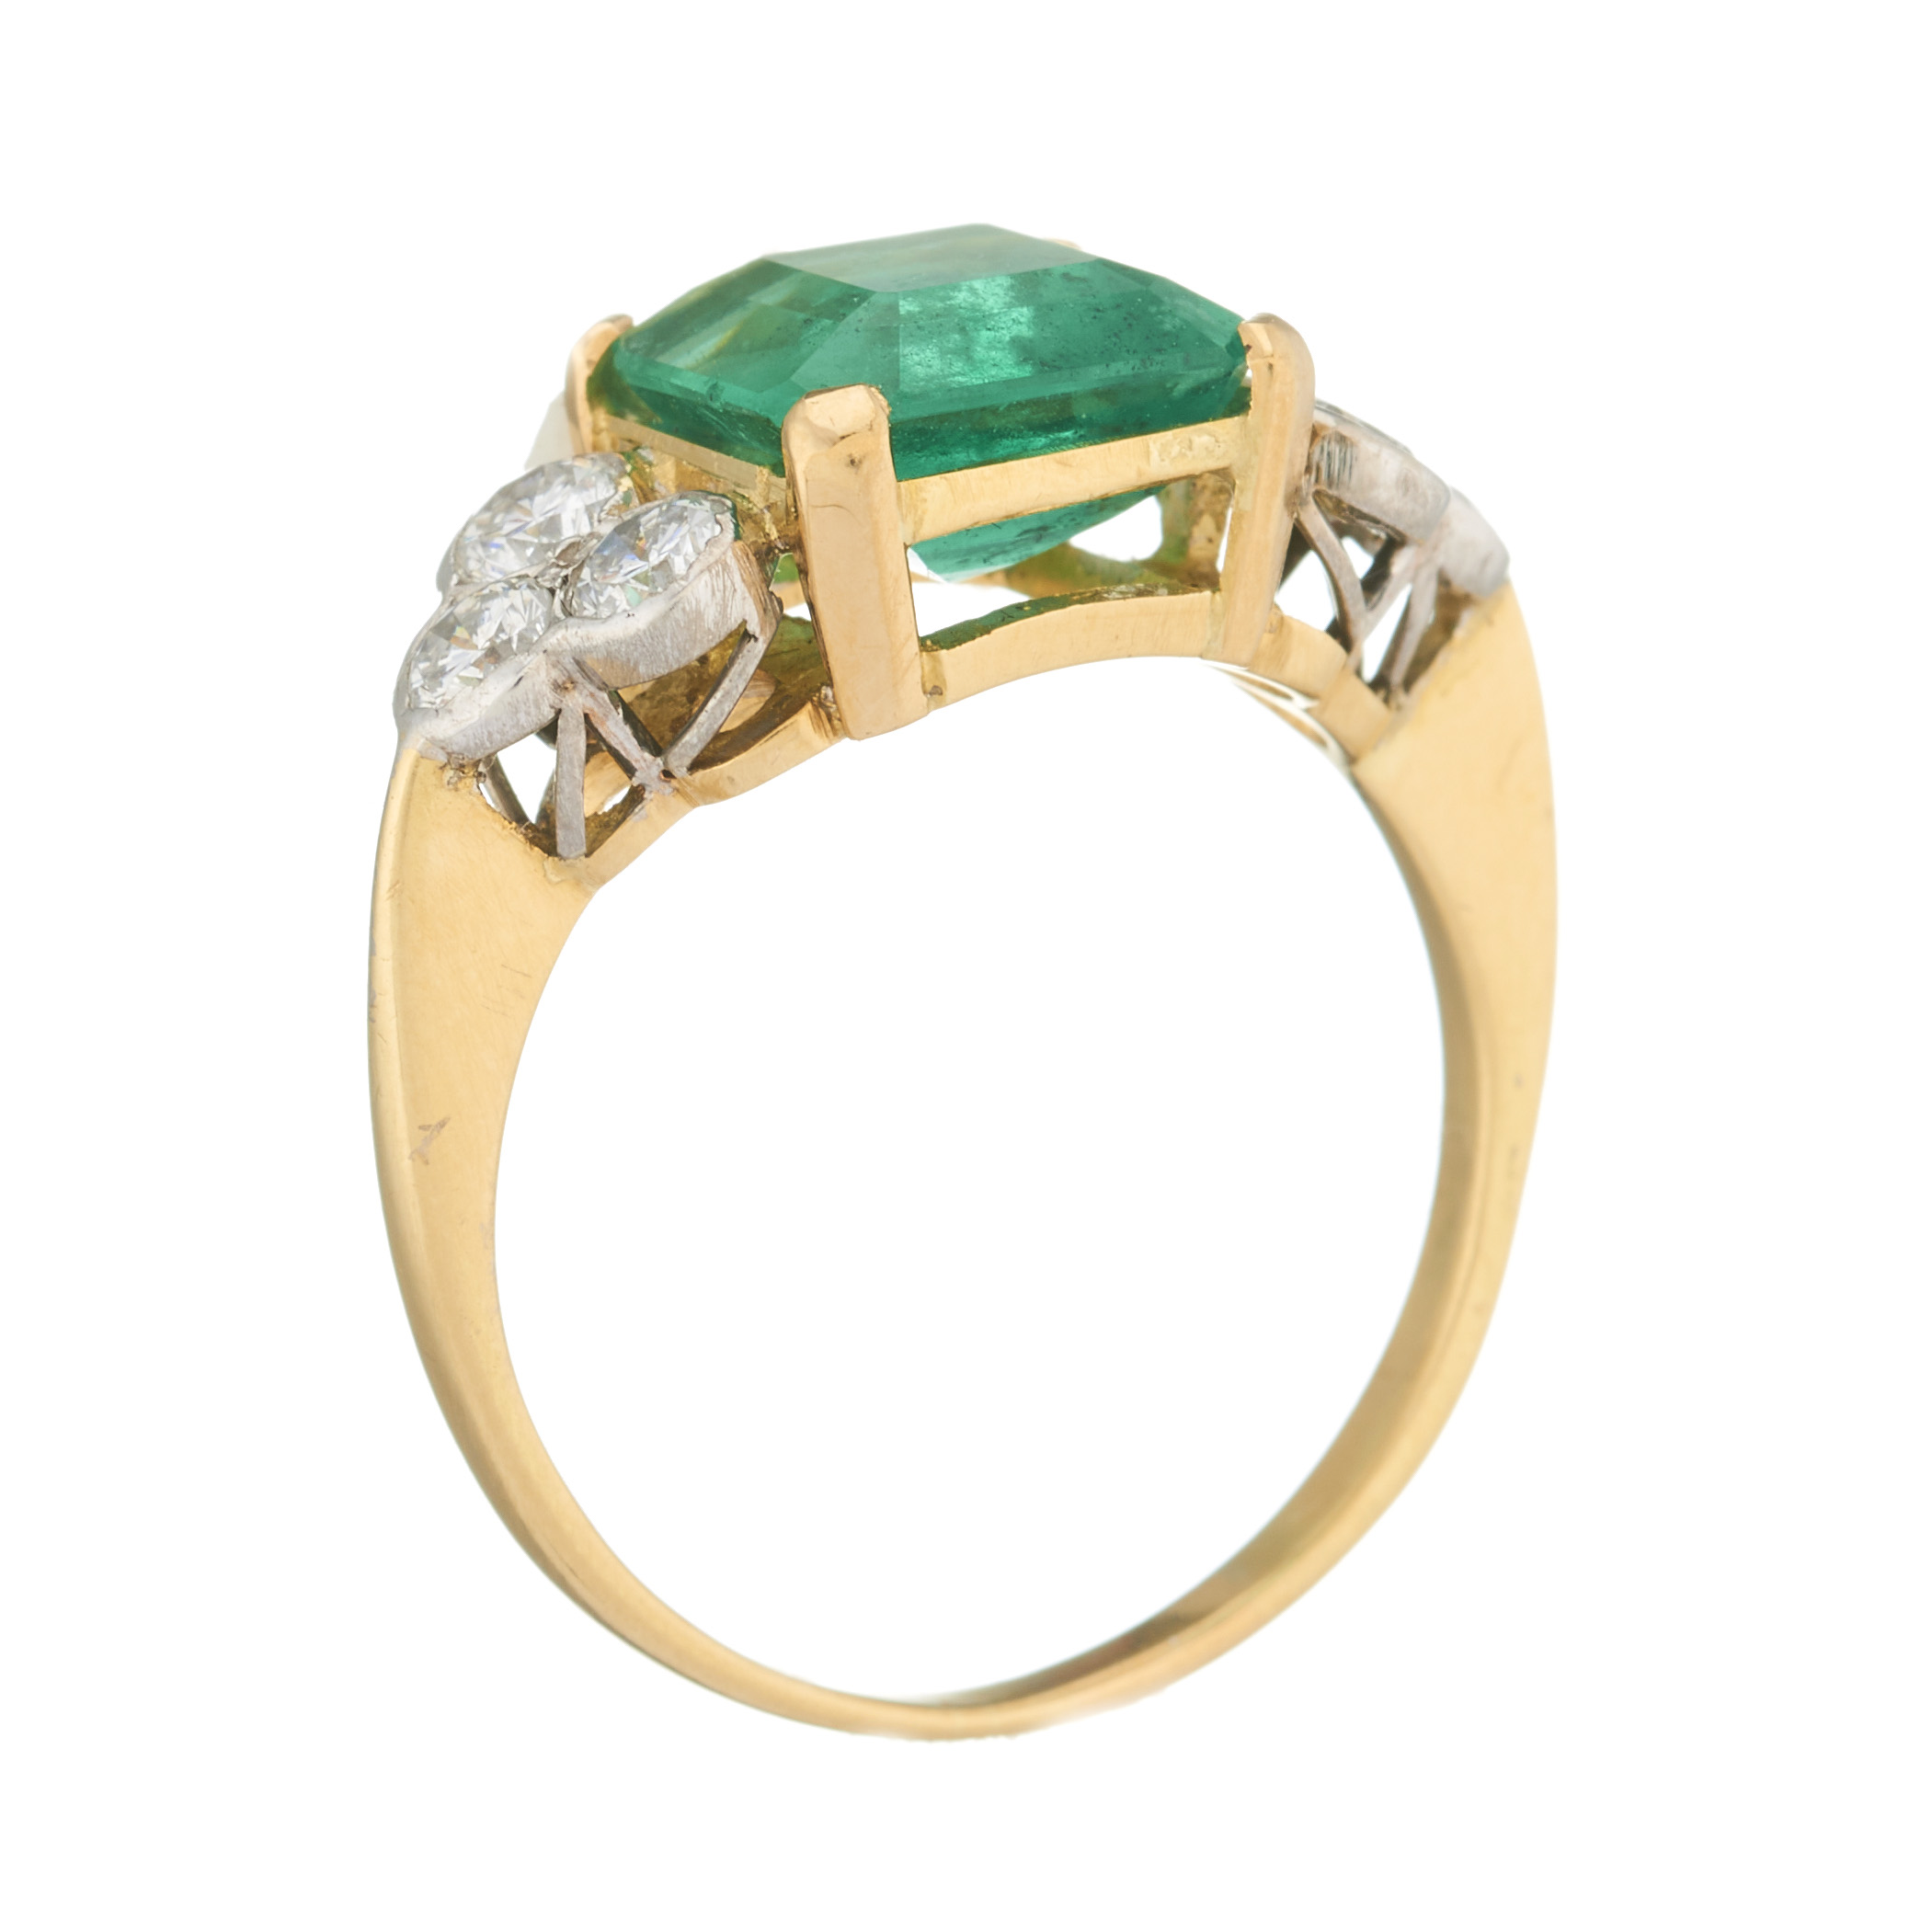 An 18ct gold emerald and diamond dress ring - Image 2 of 2